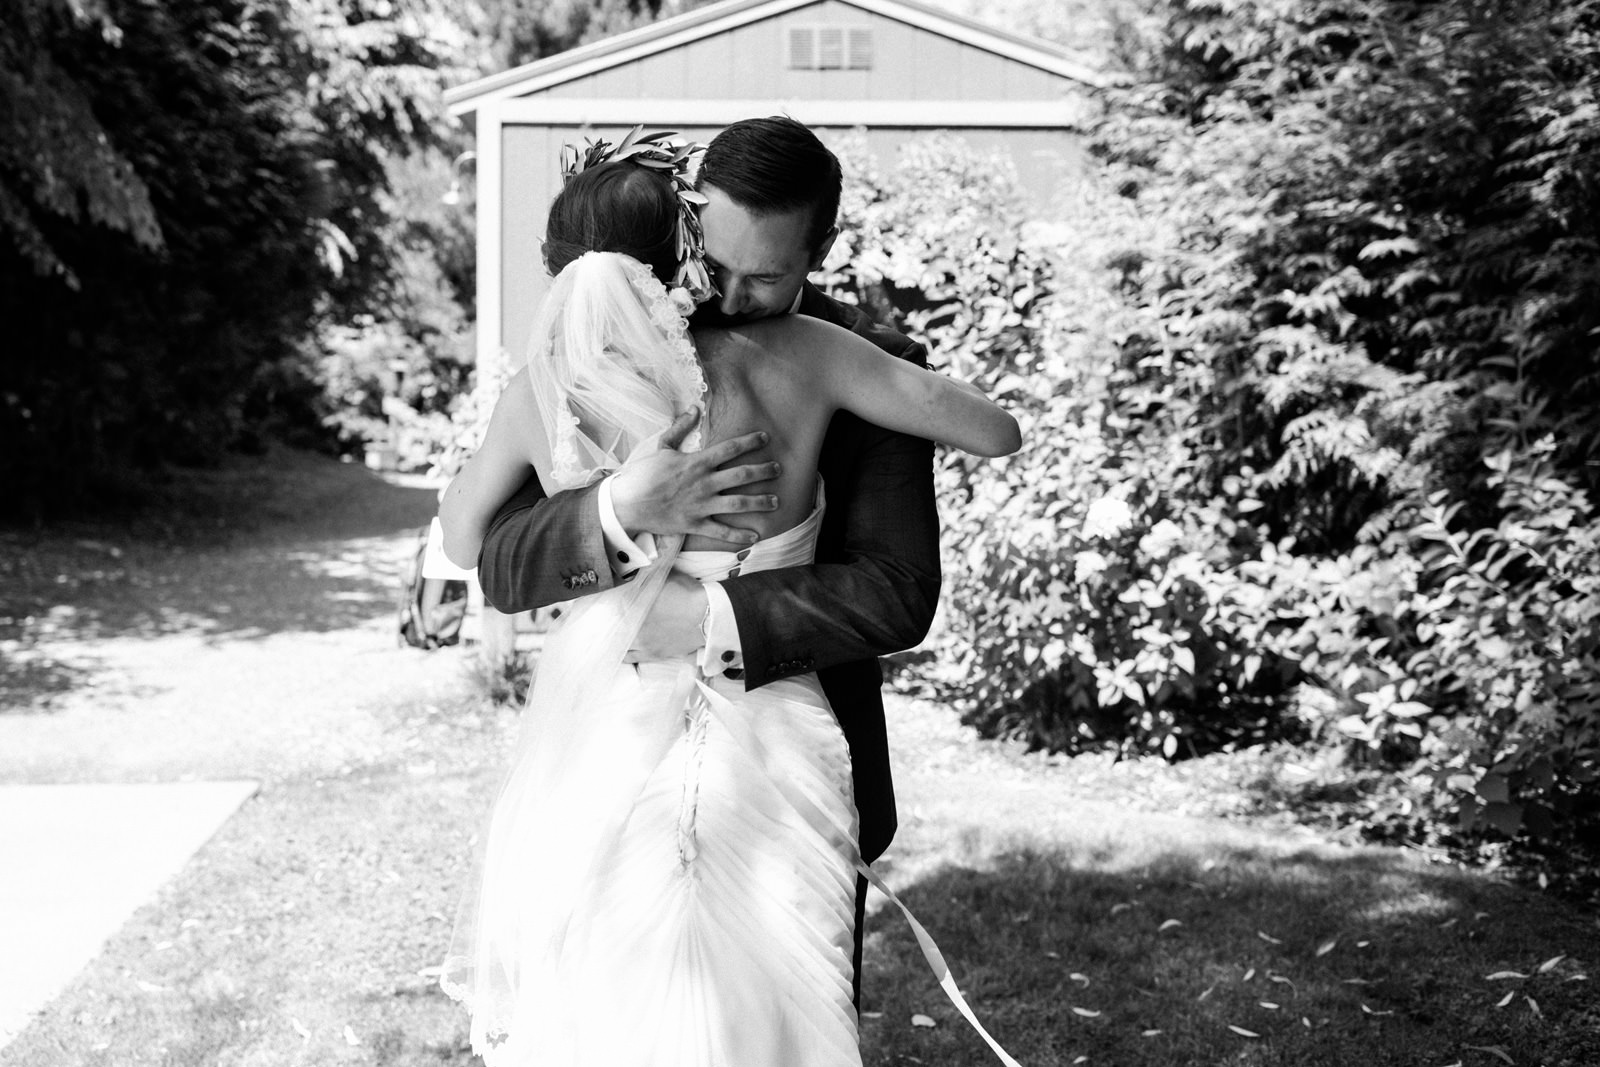 028-an-emotional-groom-crying-during-his-first-look-with-his-bride.jpg